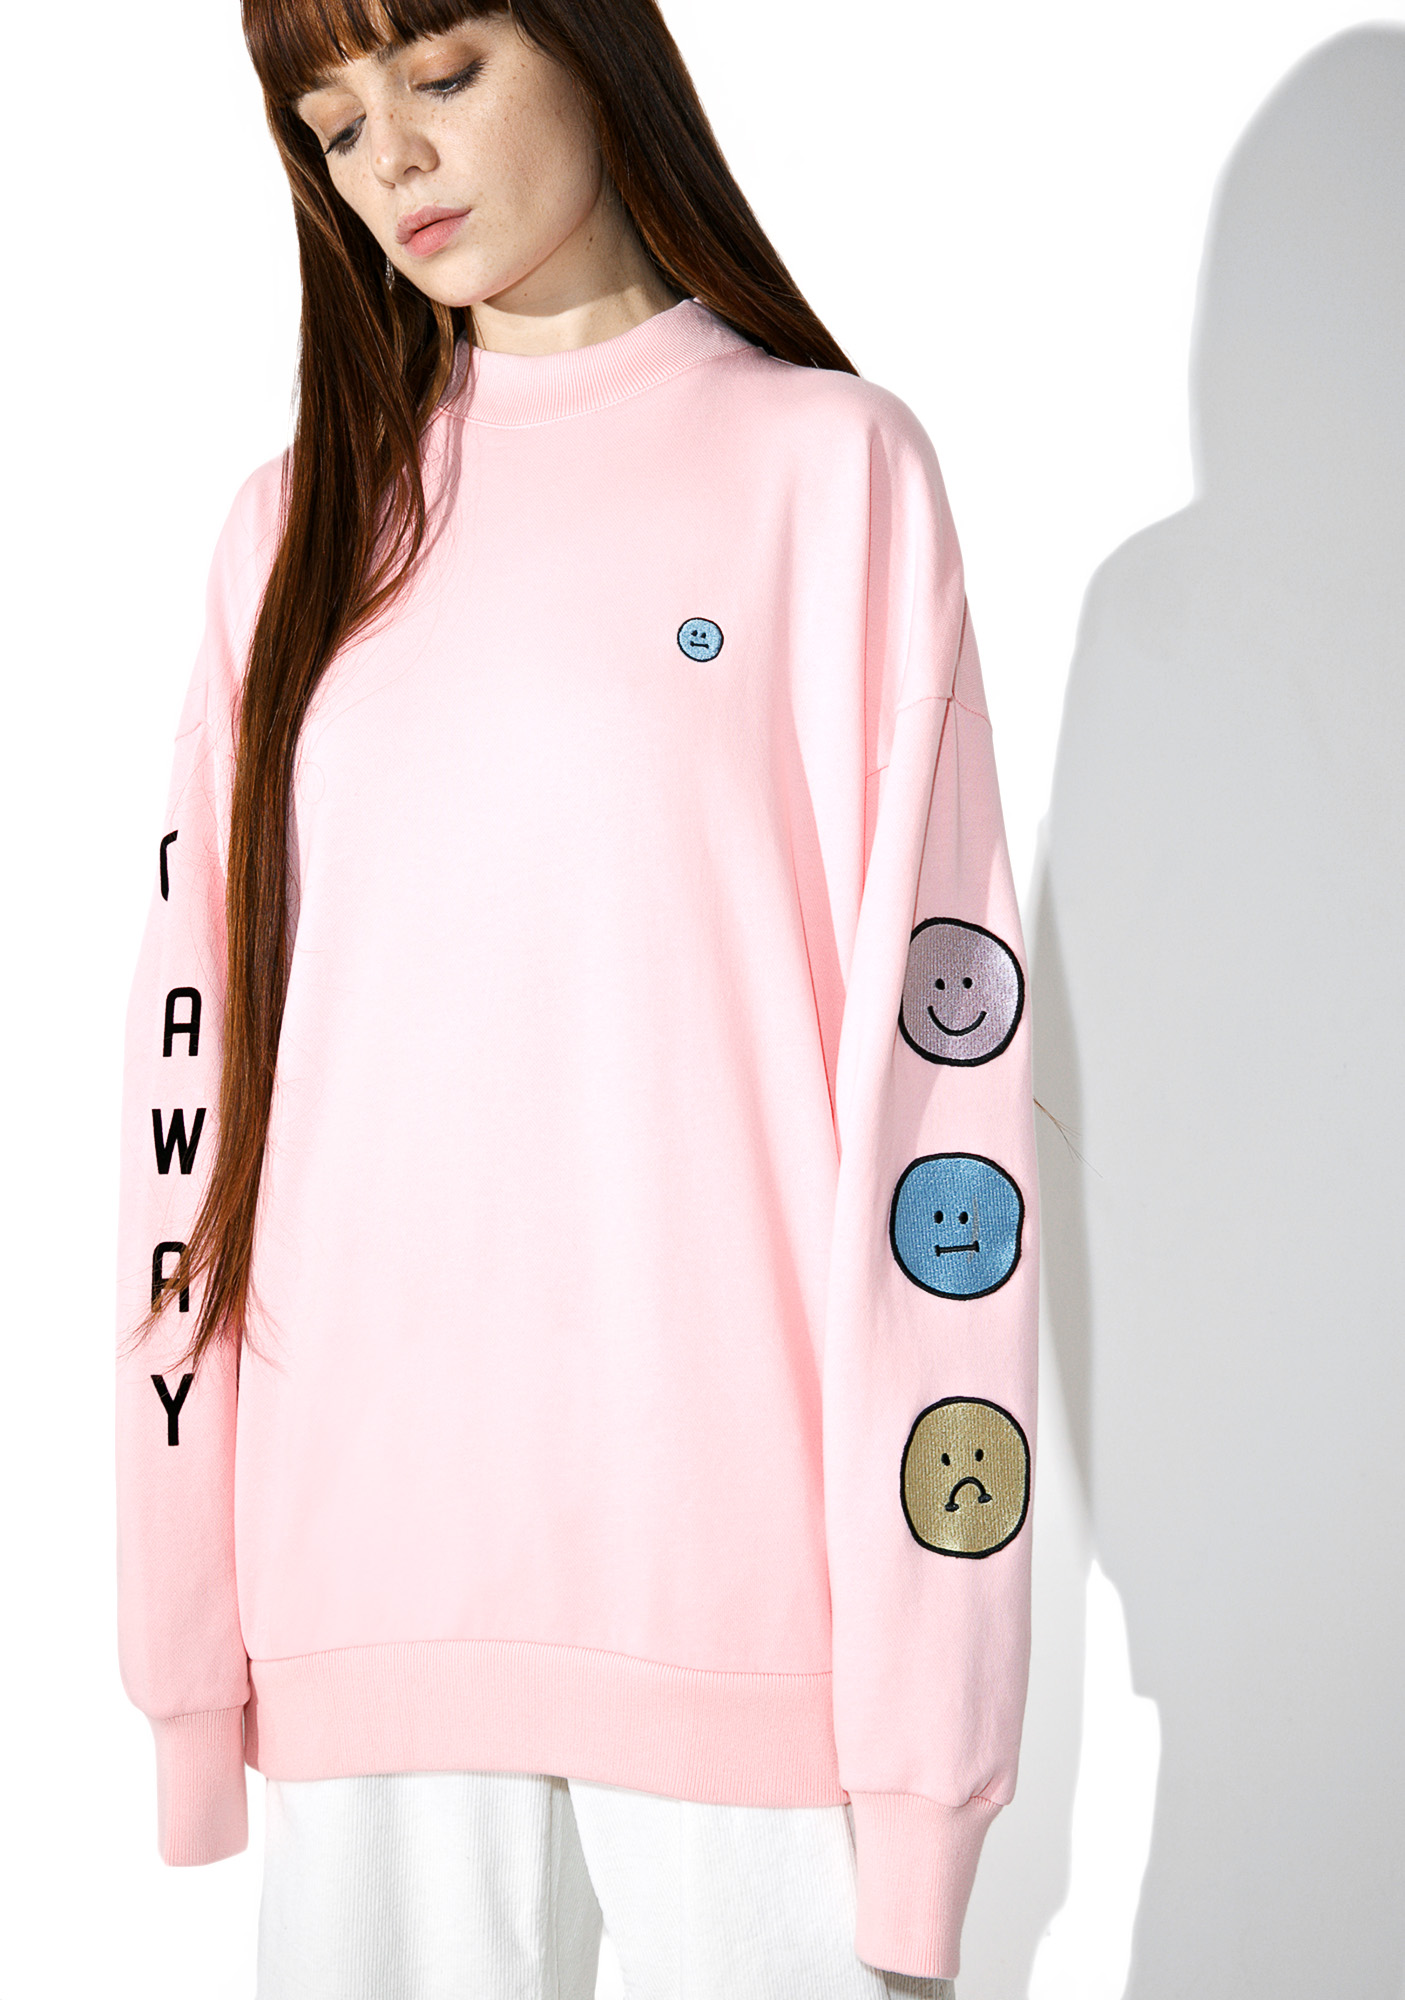 Lazy Oaf Moody Faces Sweatshirt